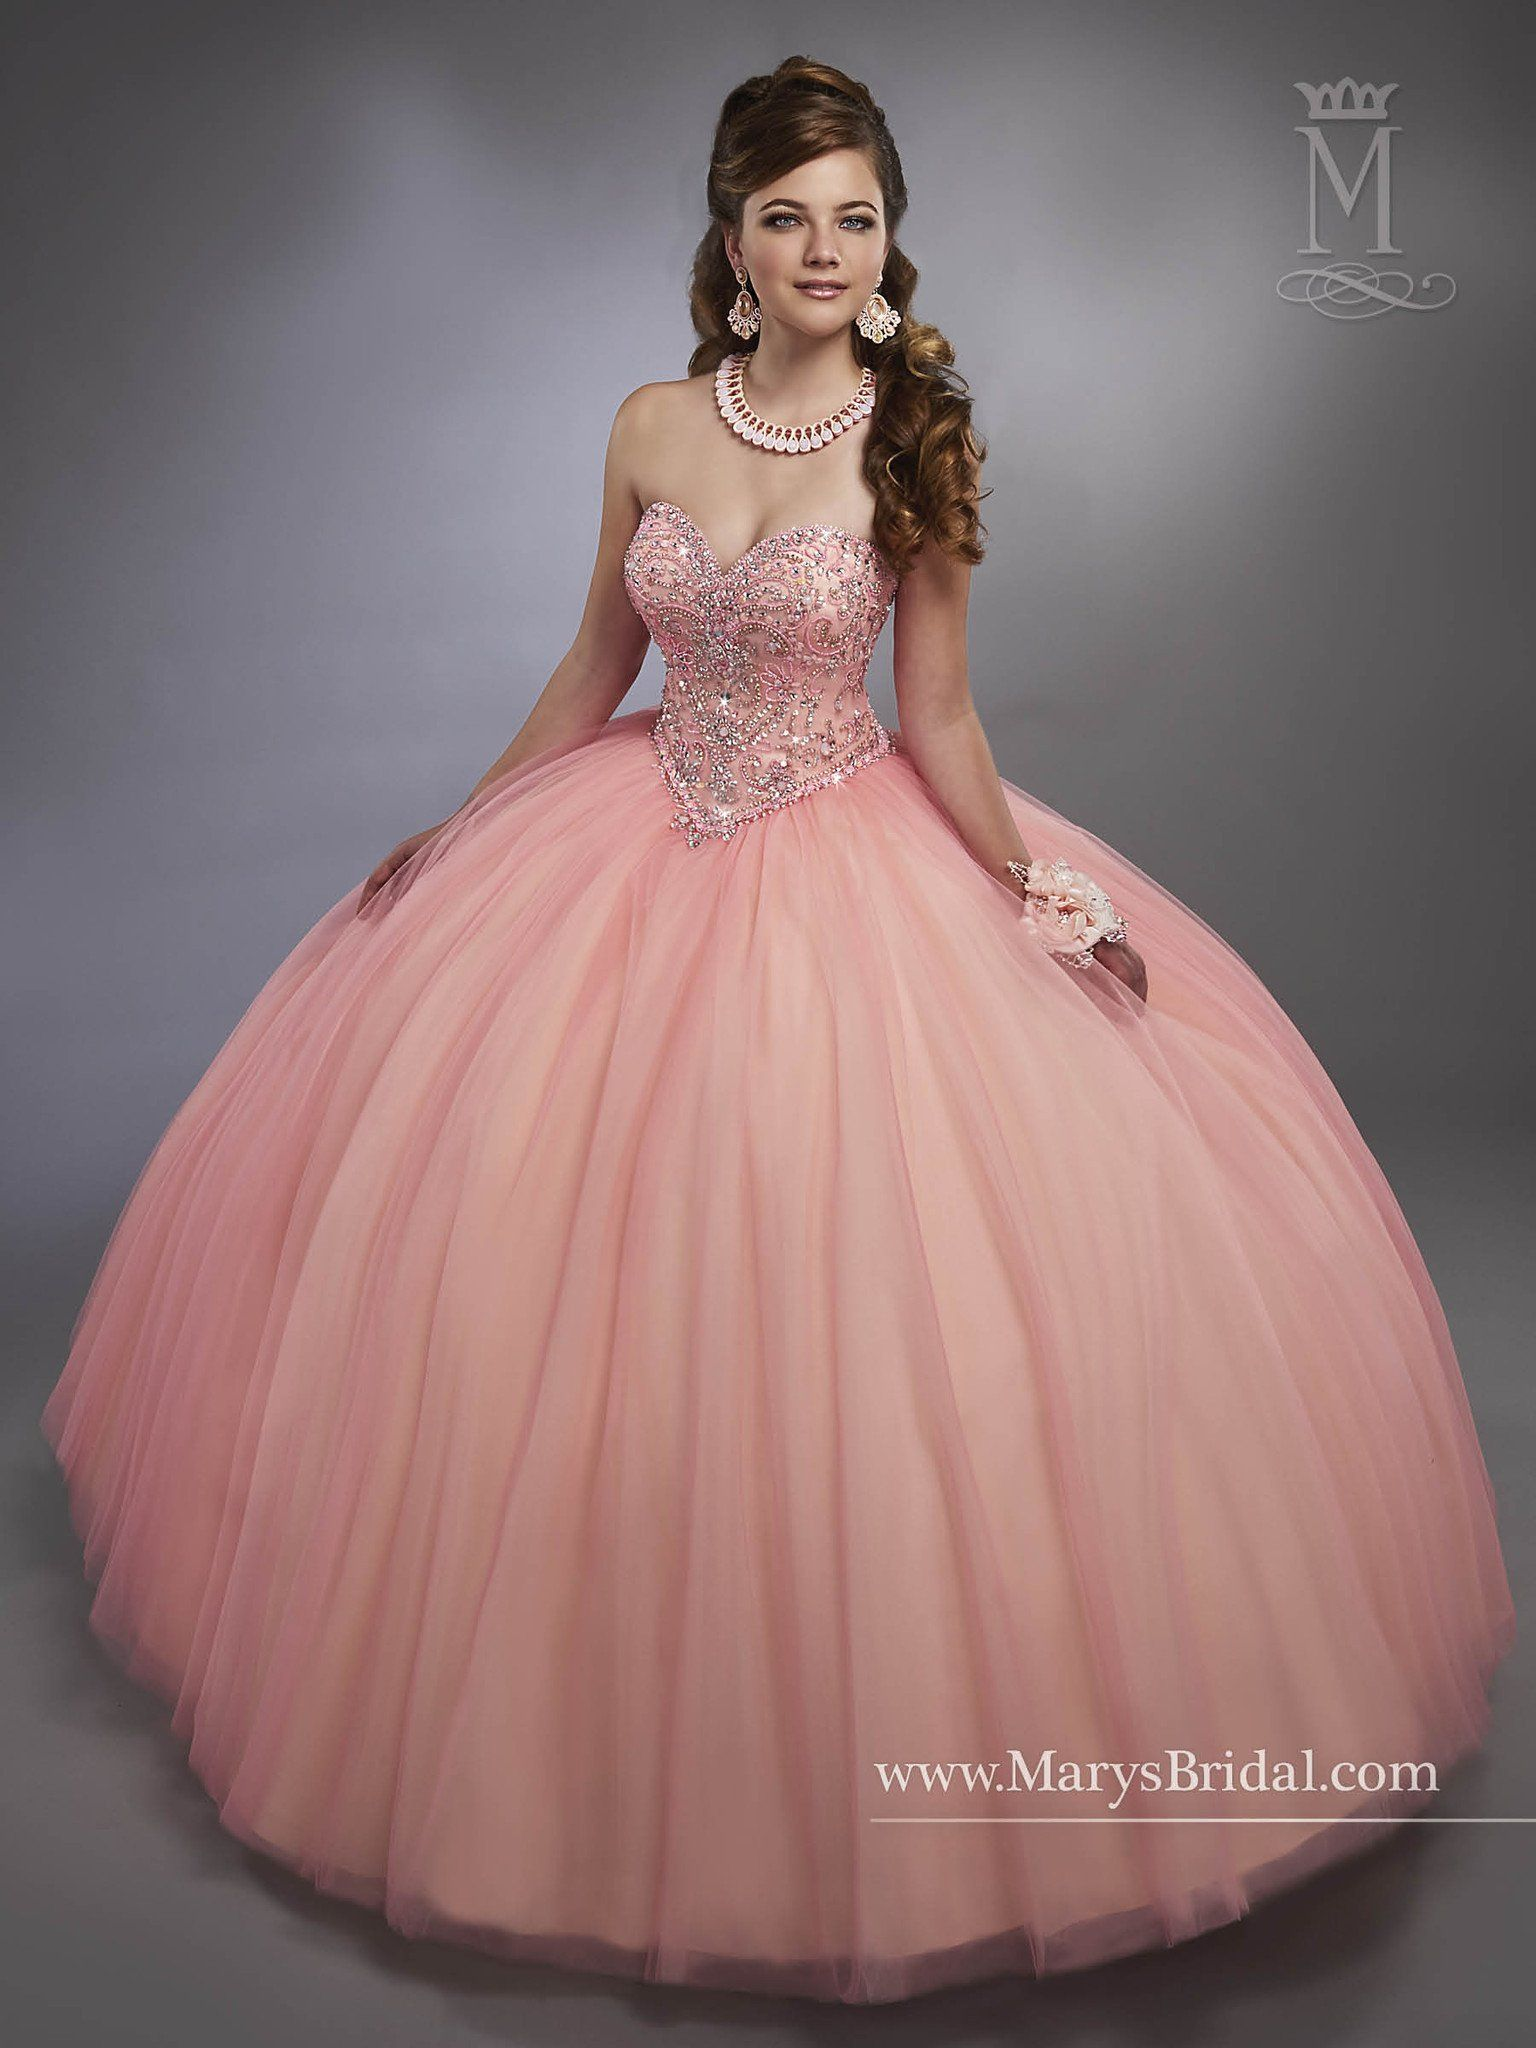 Mary\'s Bridal Beloving Collection Quinceanera Dress Style 4778 ...